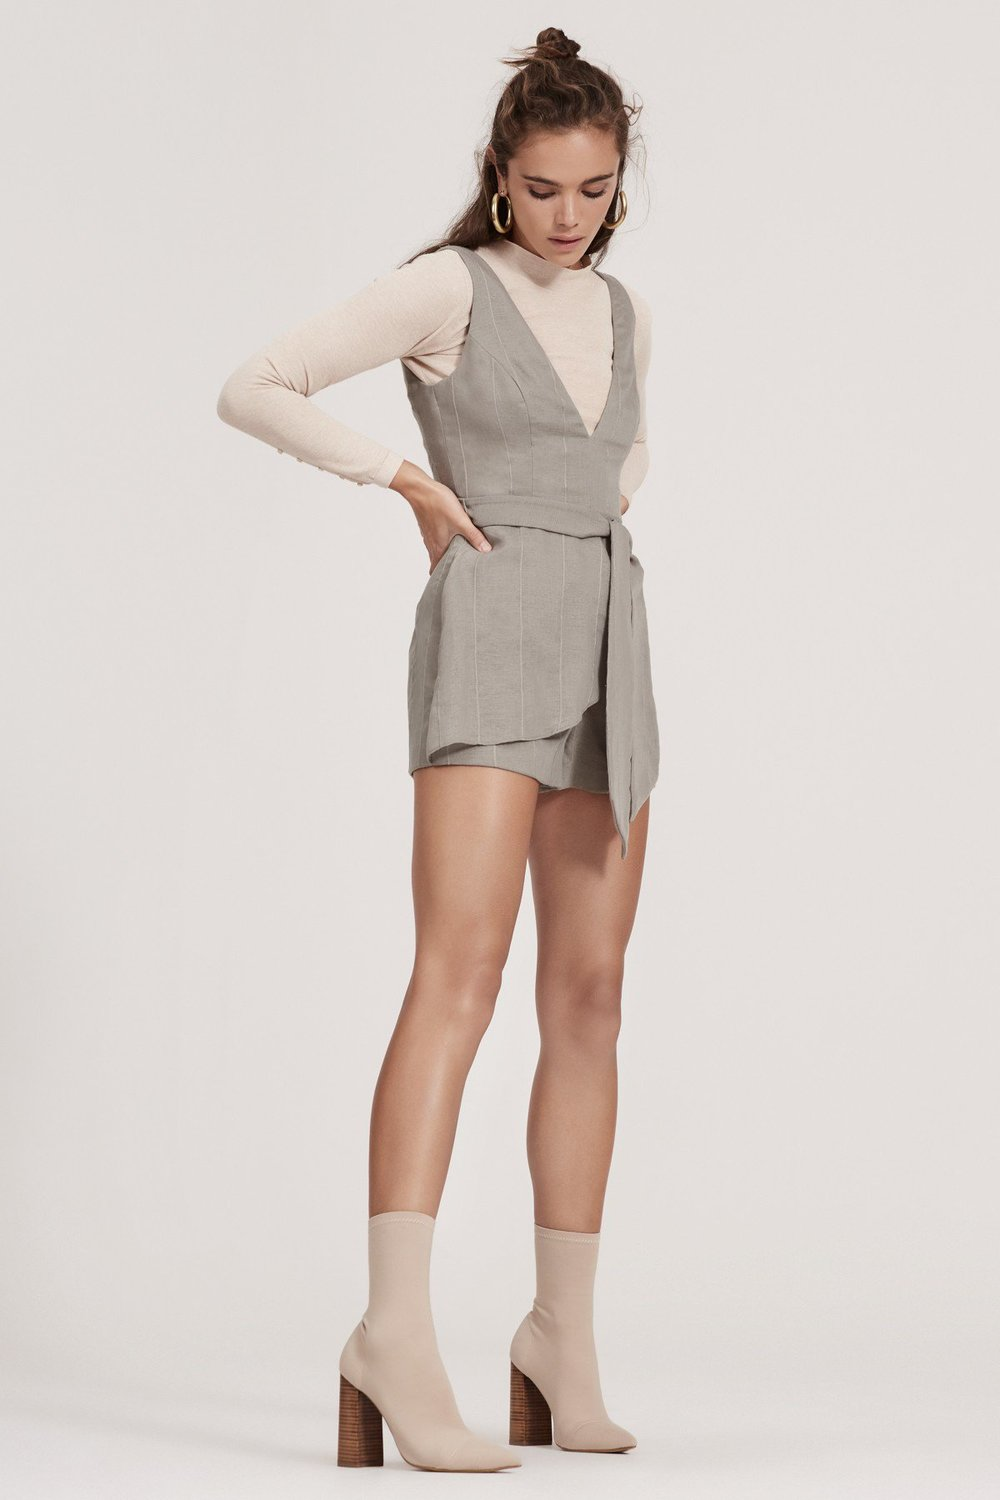 Shop  Finders 1992 Knit  +  Sanctuary Playsuit .